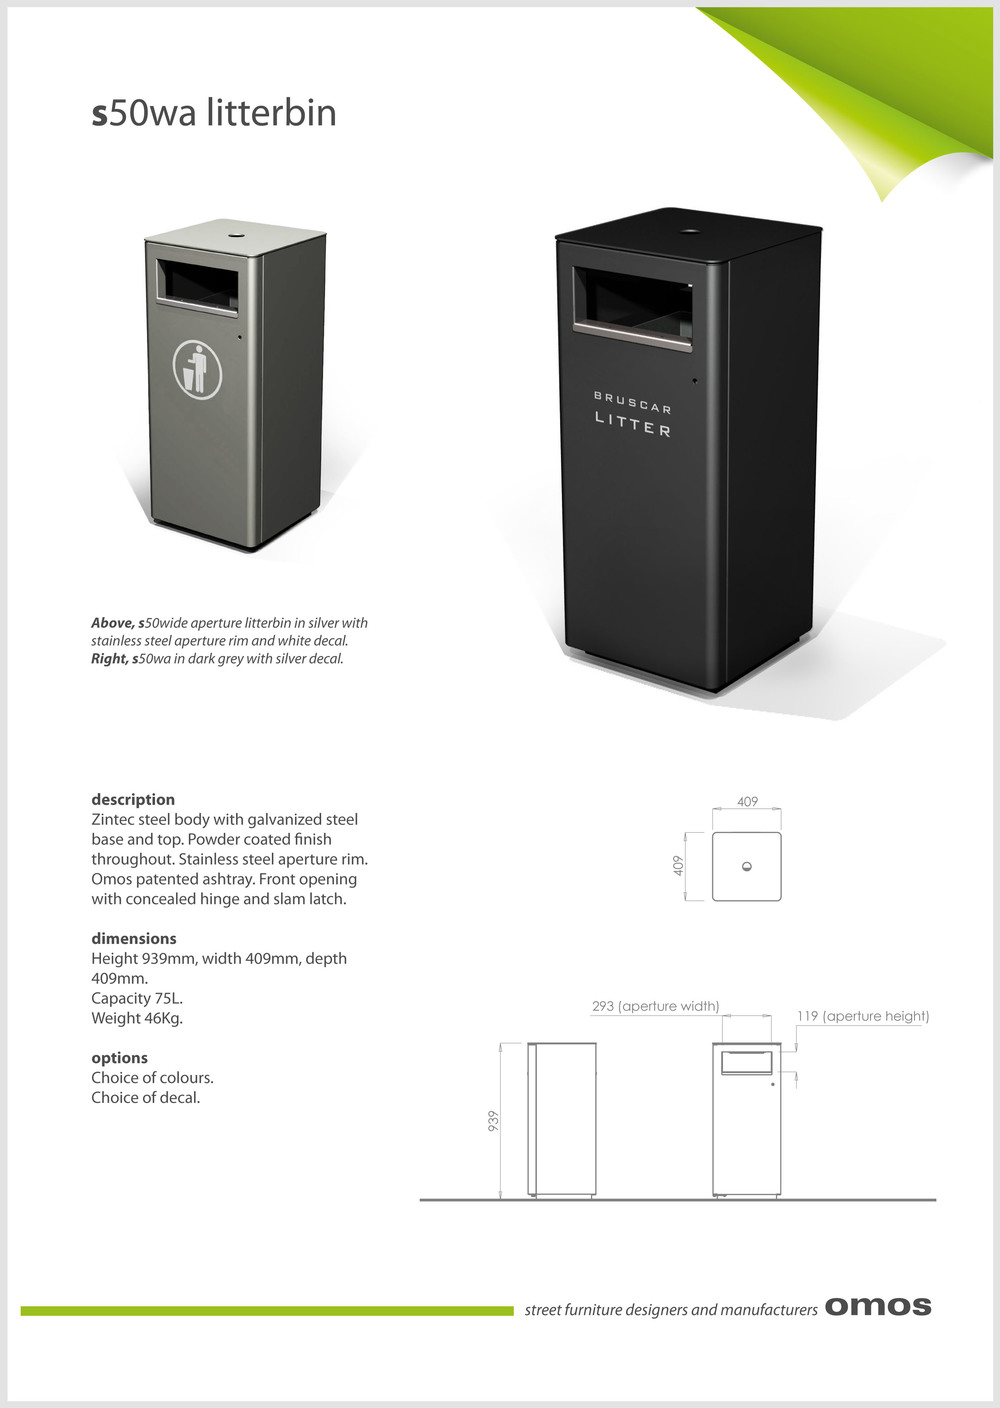 s50wa litter bin data sheet